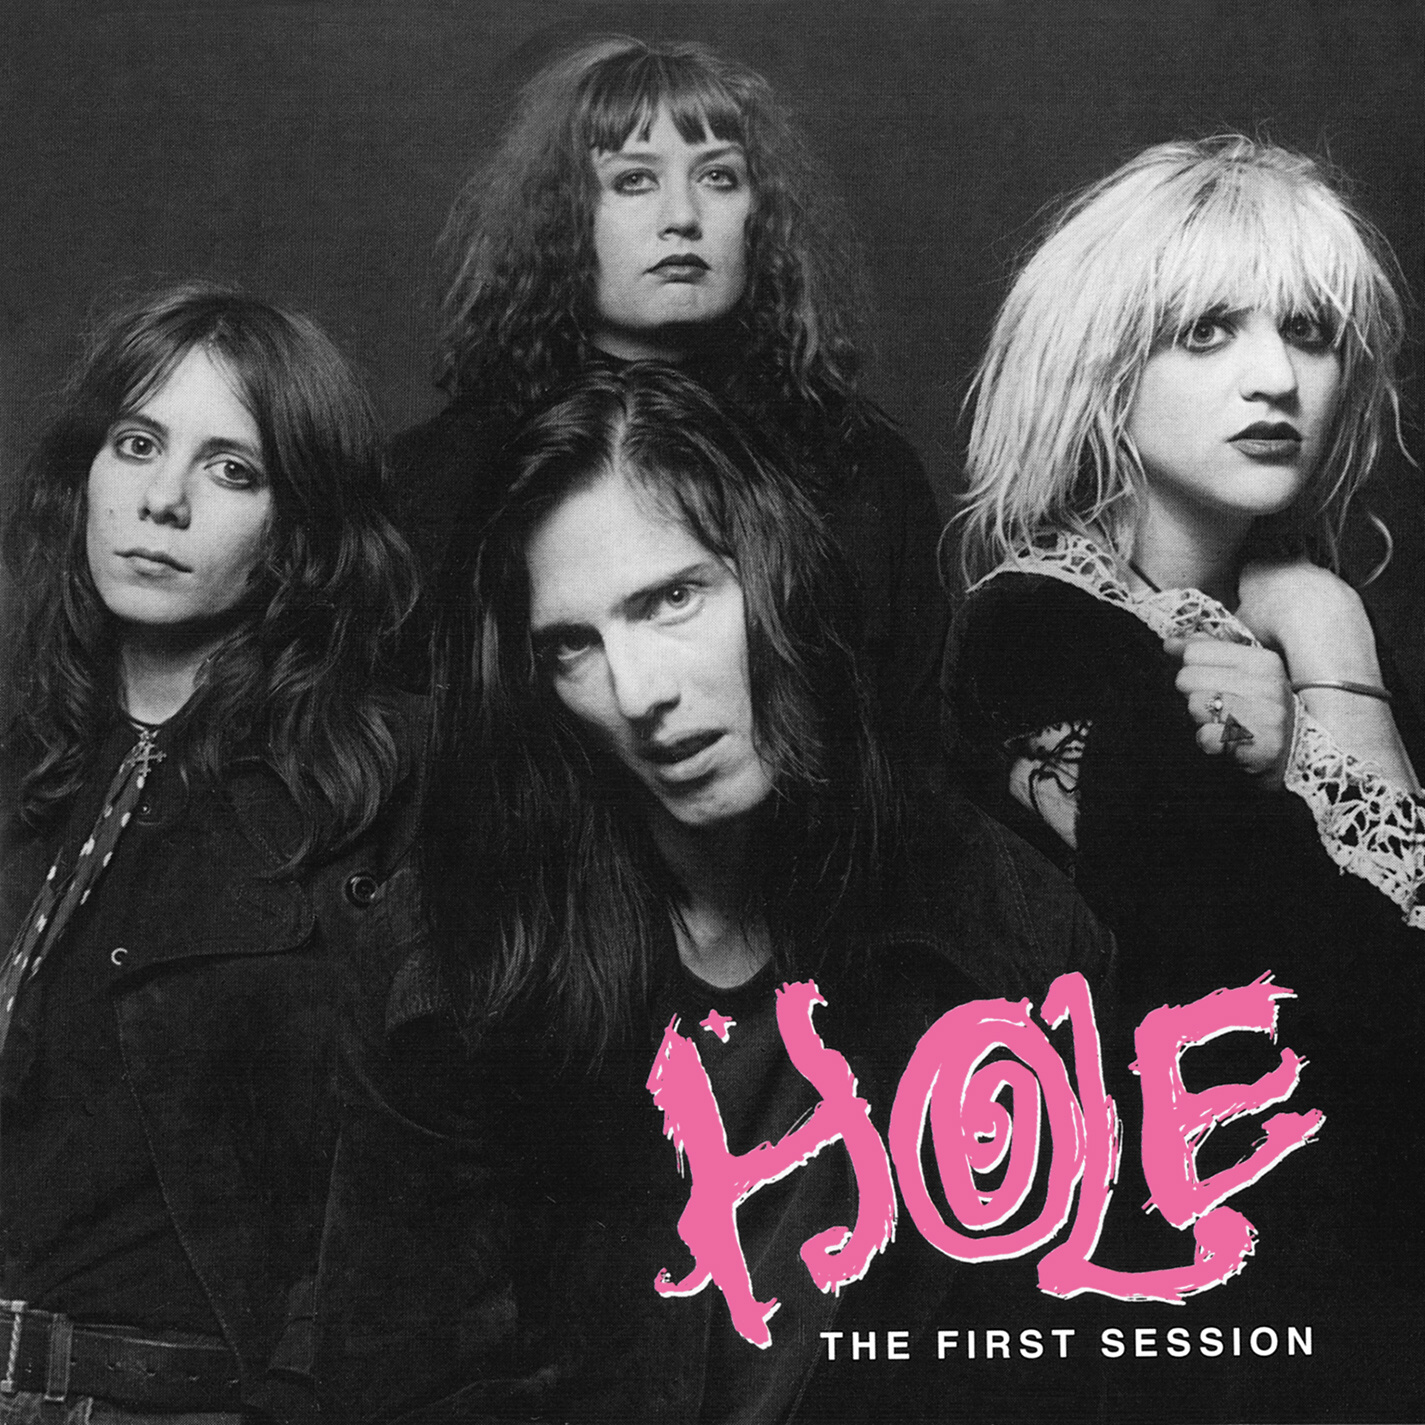 http://www.copertinedvd.org/copertine-cd-file/H/hole_-_the_first_session_-_front.jpg